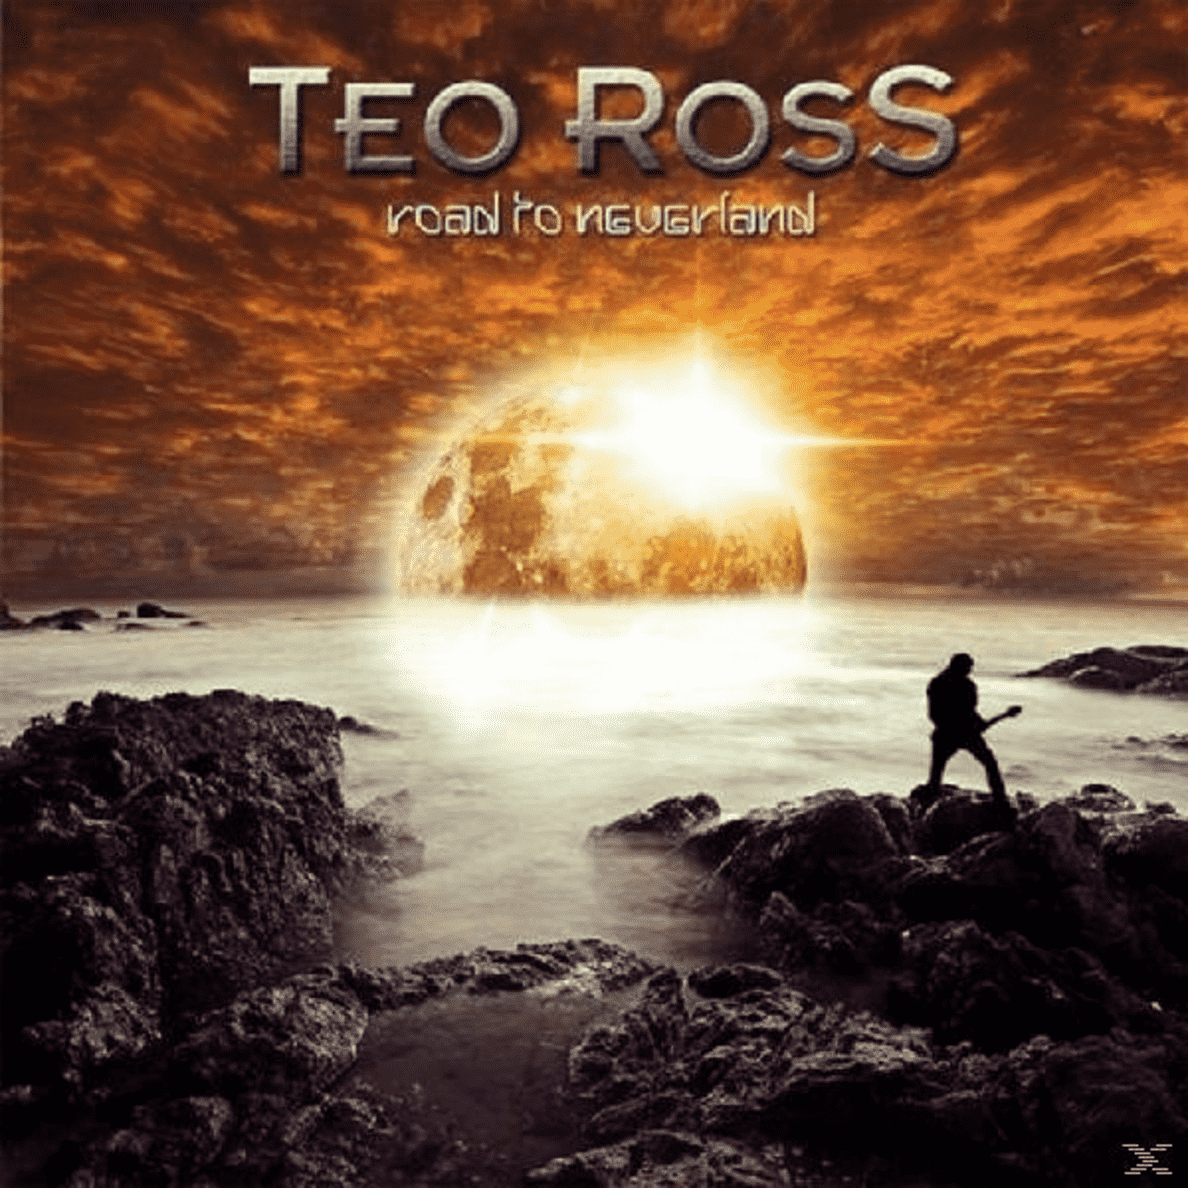 Road To Neverland Teo Ross auf CD